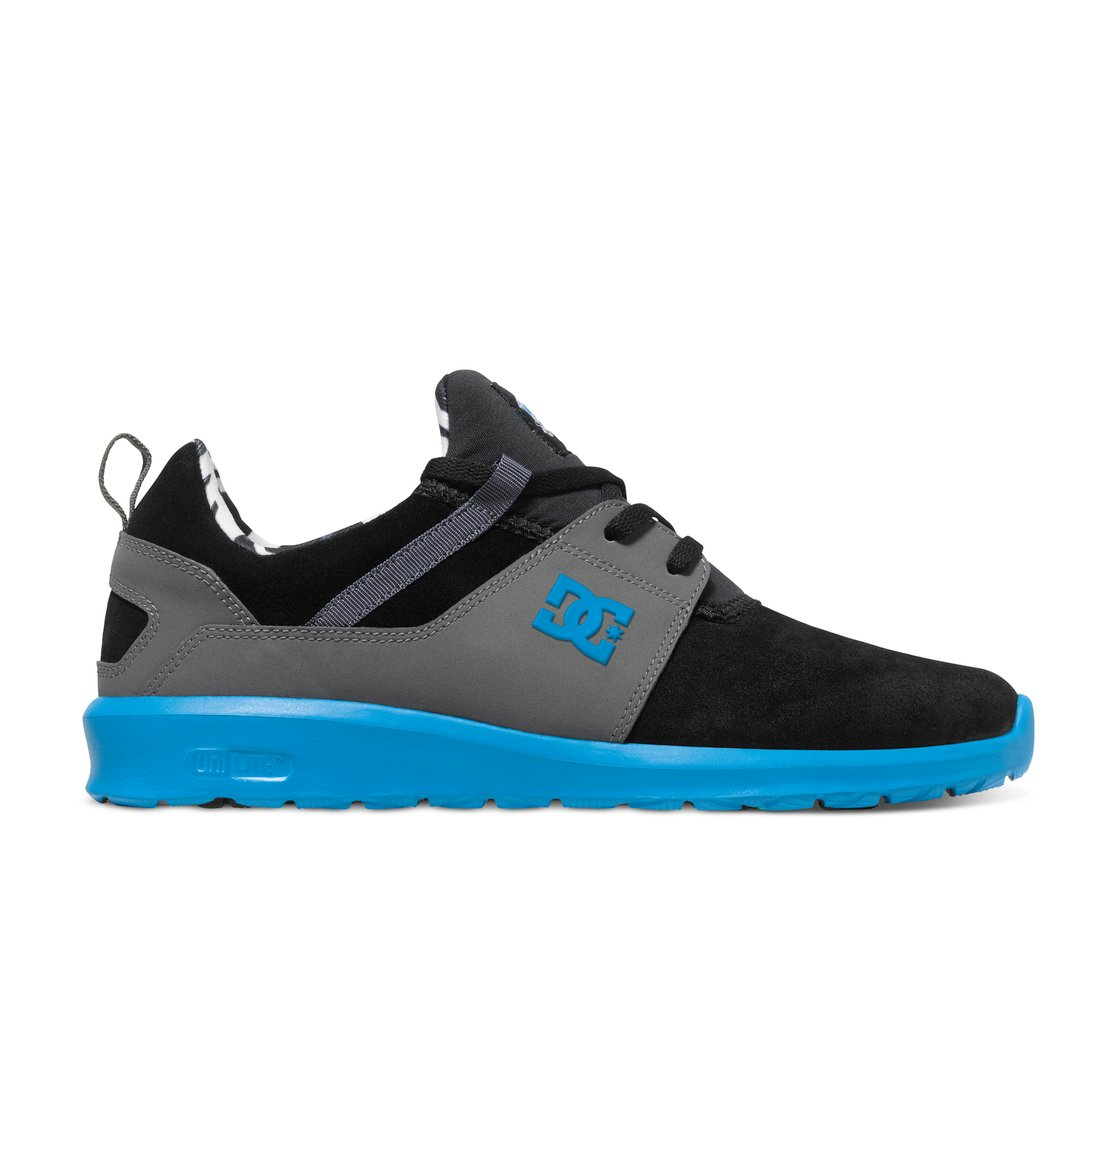 separation shoes ff176 d3566 Heathrow KB - Low Top Schuhe ADYS700075